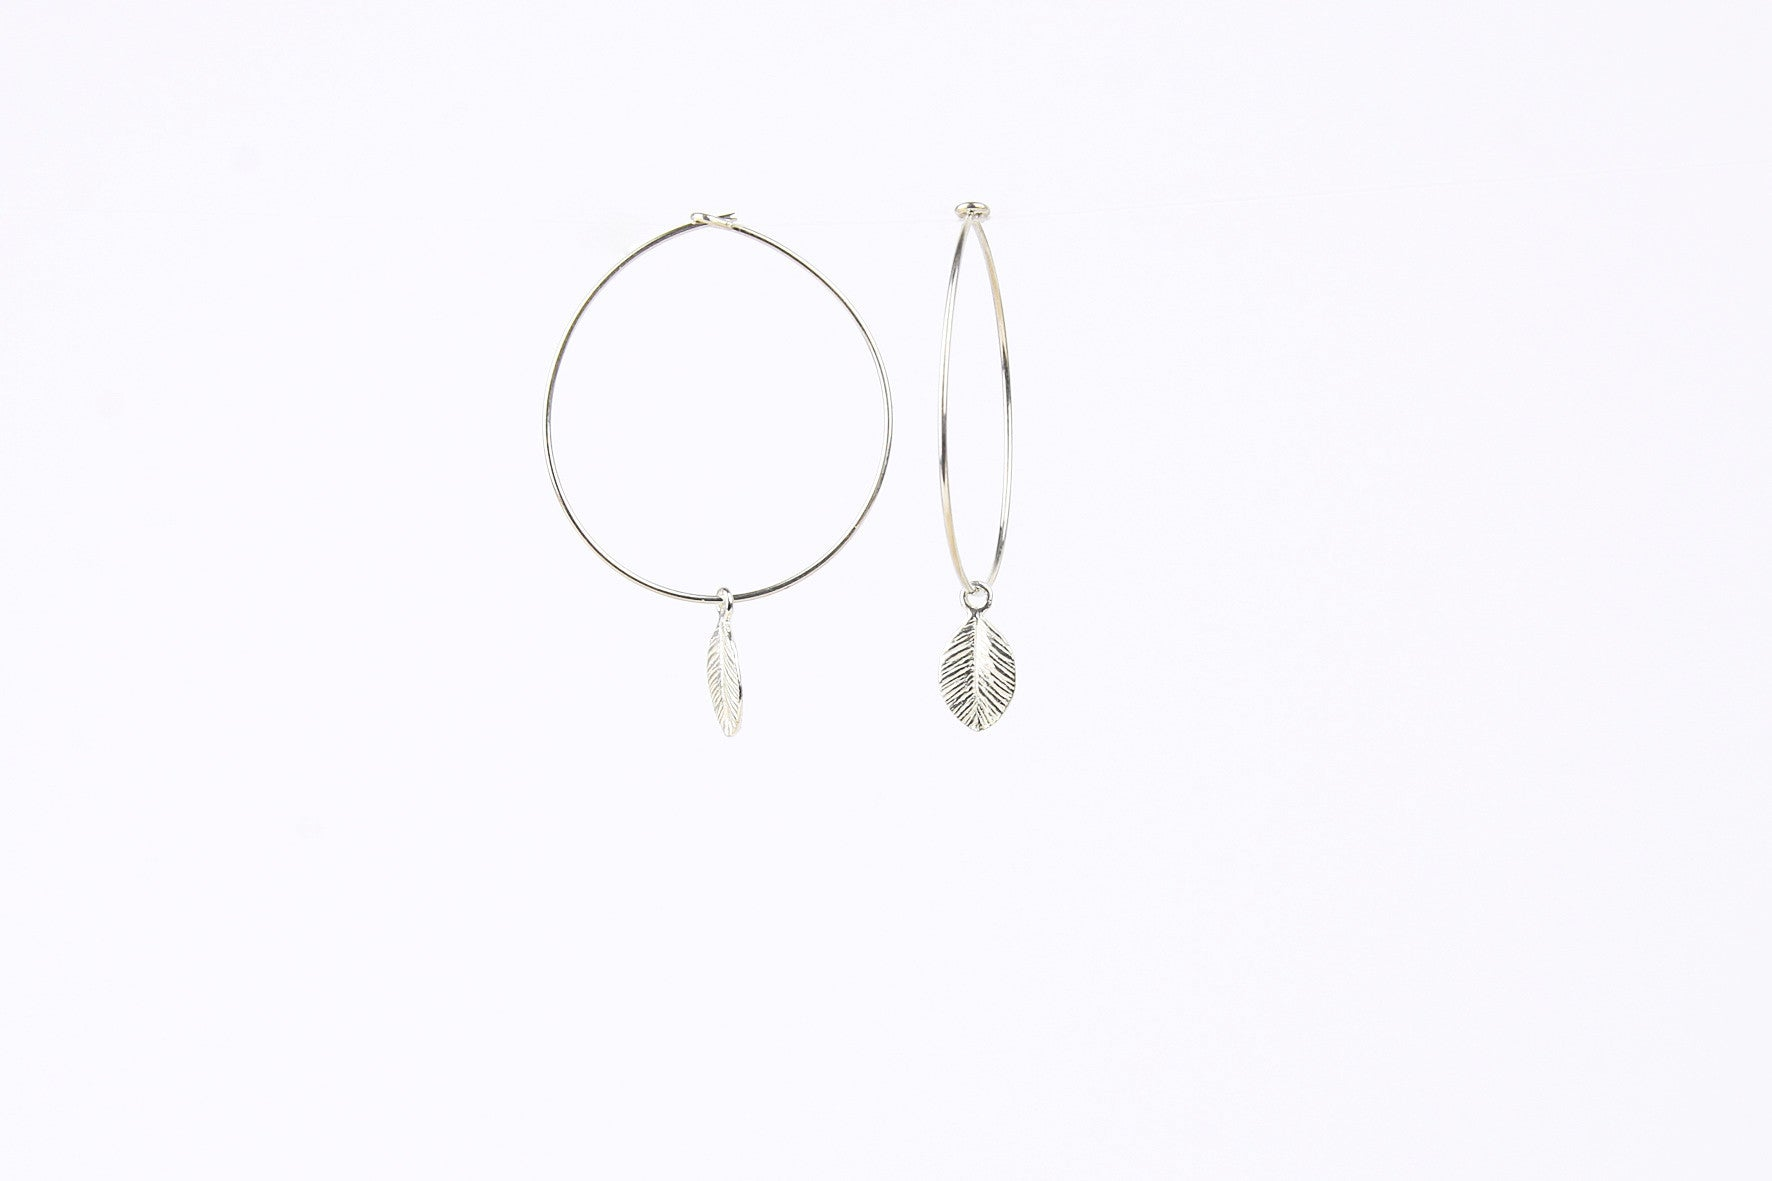 jewelberry ohrringe earrings tiny leaf hoops sterling silver fine jewelry handmade with love fairtrade